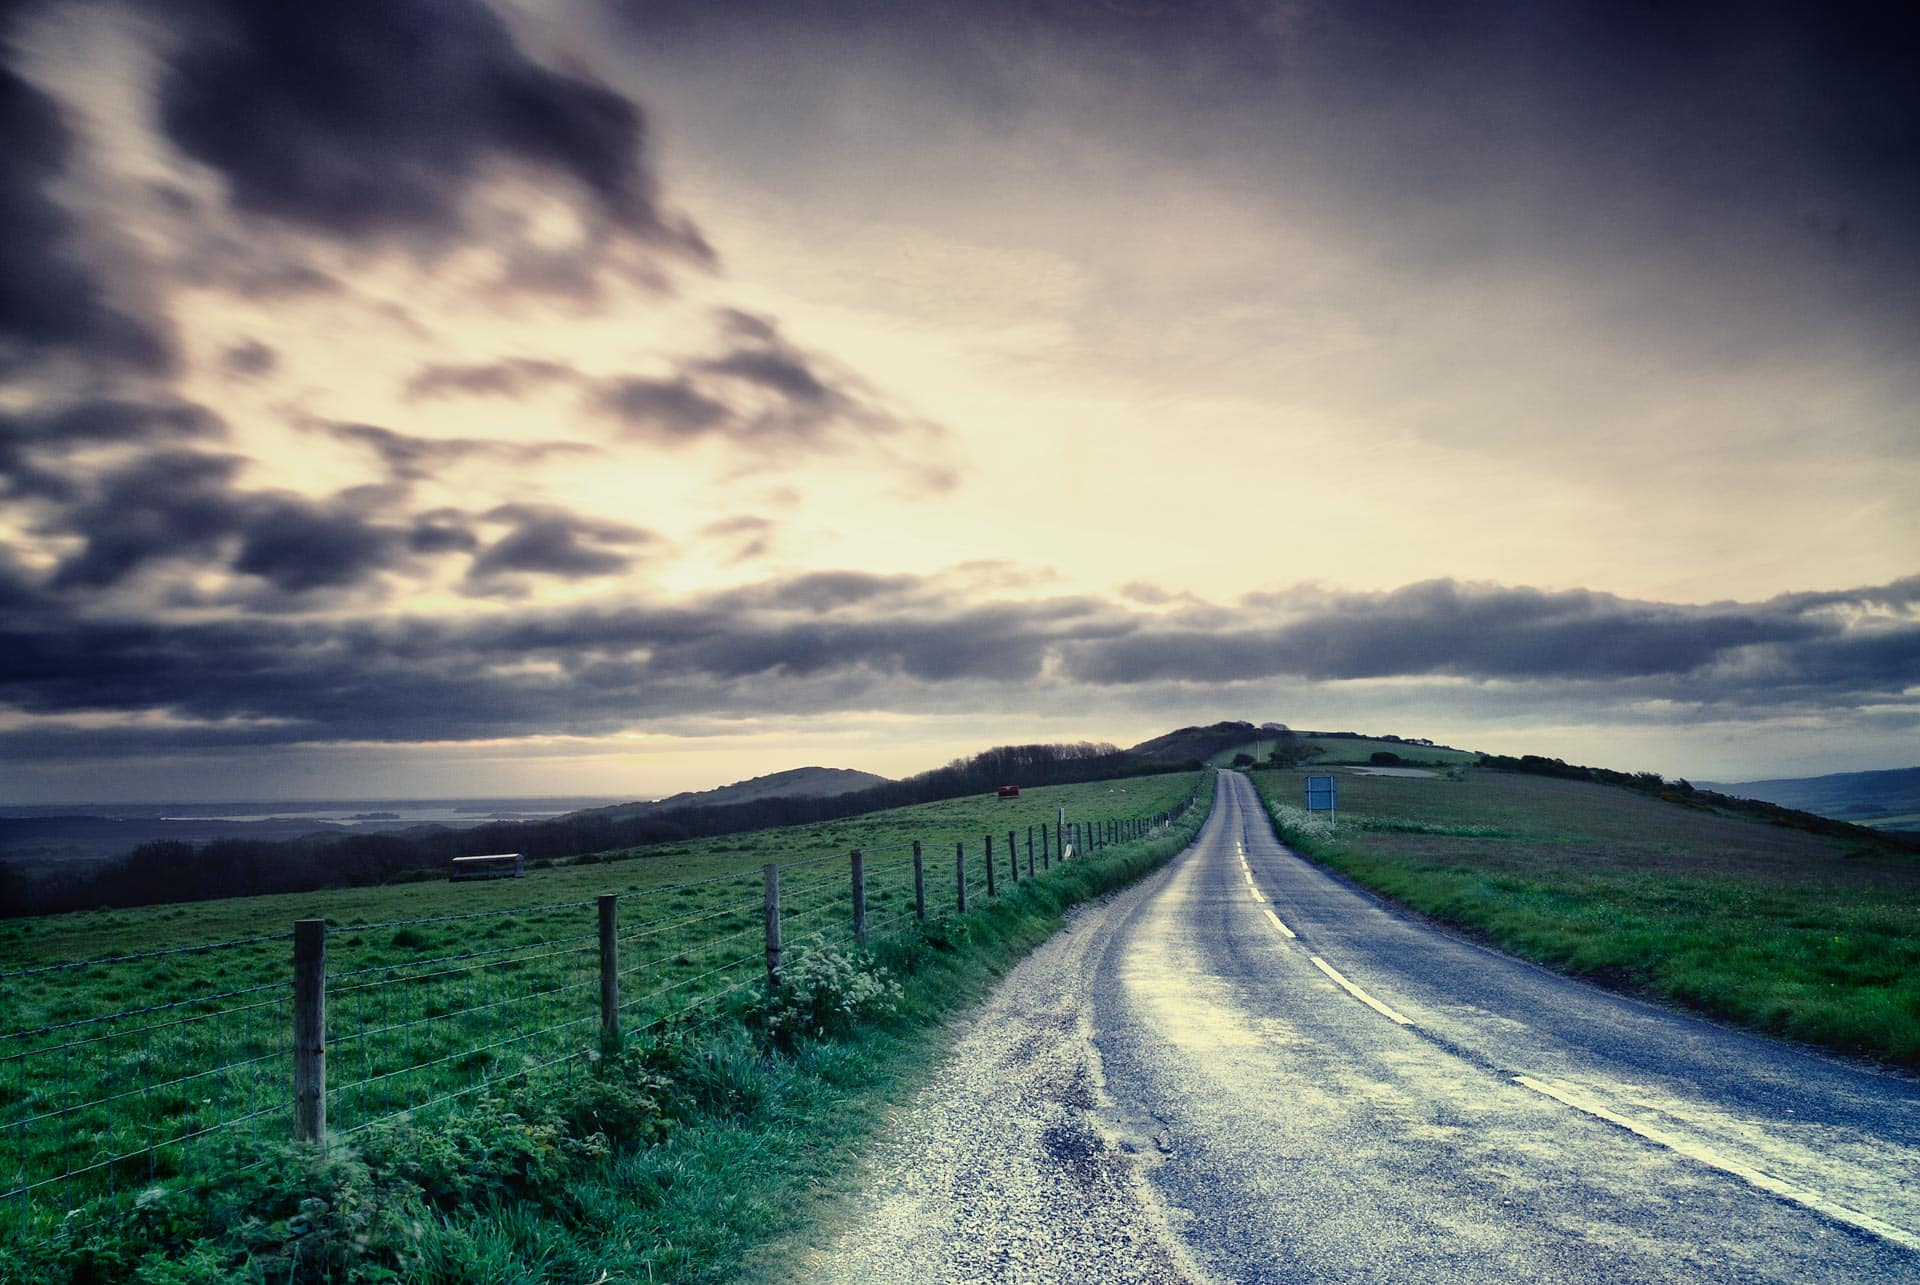 Road at dawn on the Isle of purbeck,dorset,england,uk